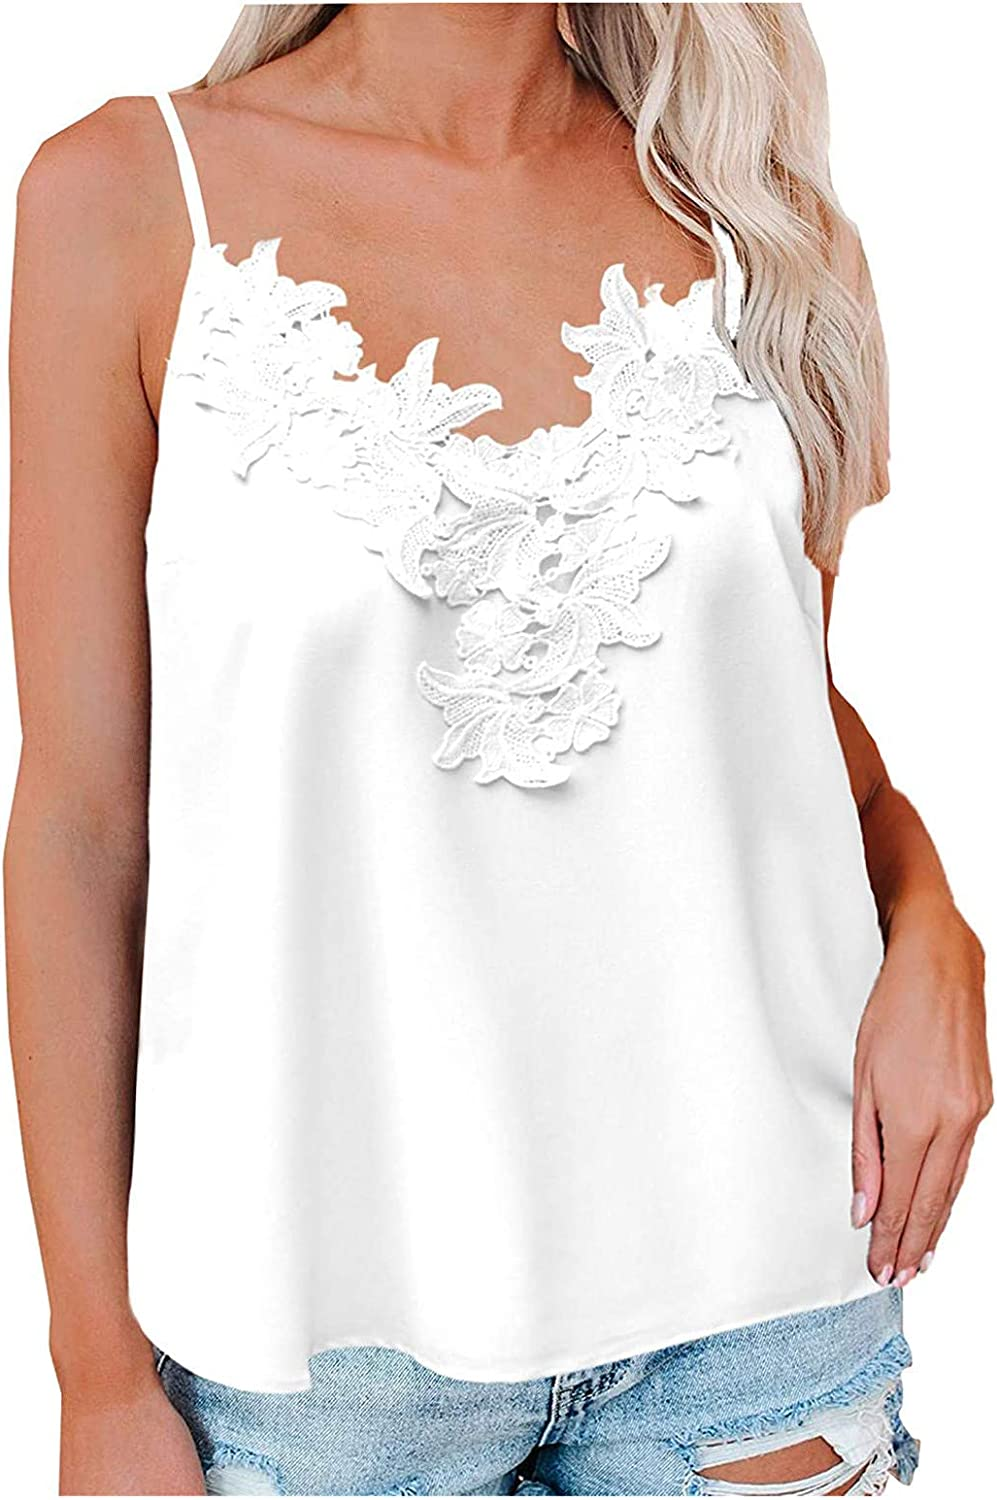 ROMITTA Women Fashion Solid Color Sexy Lace V-Neck Camisole Vest Tank Top